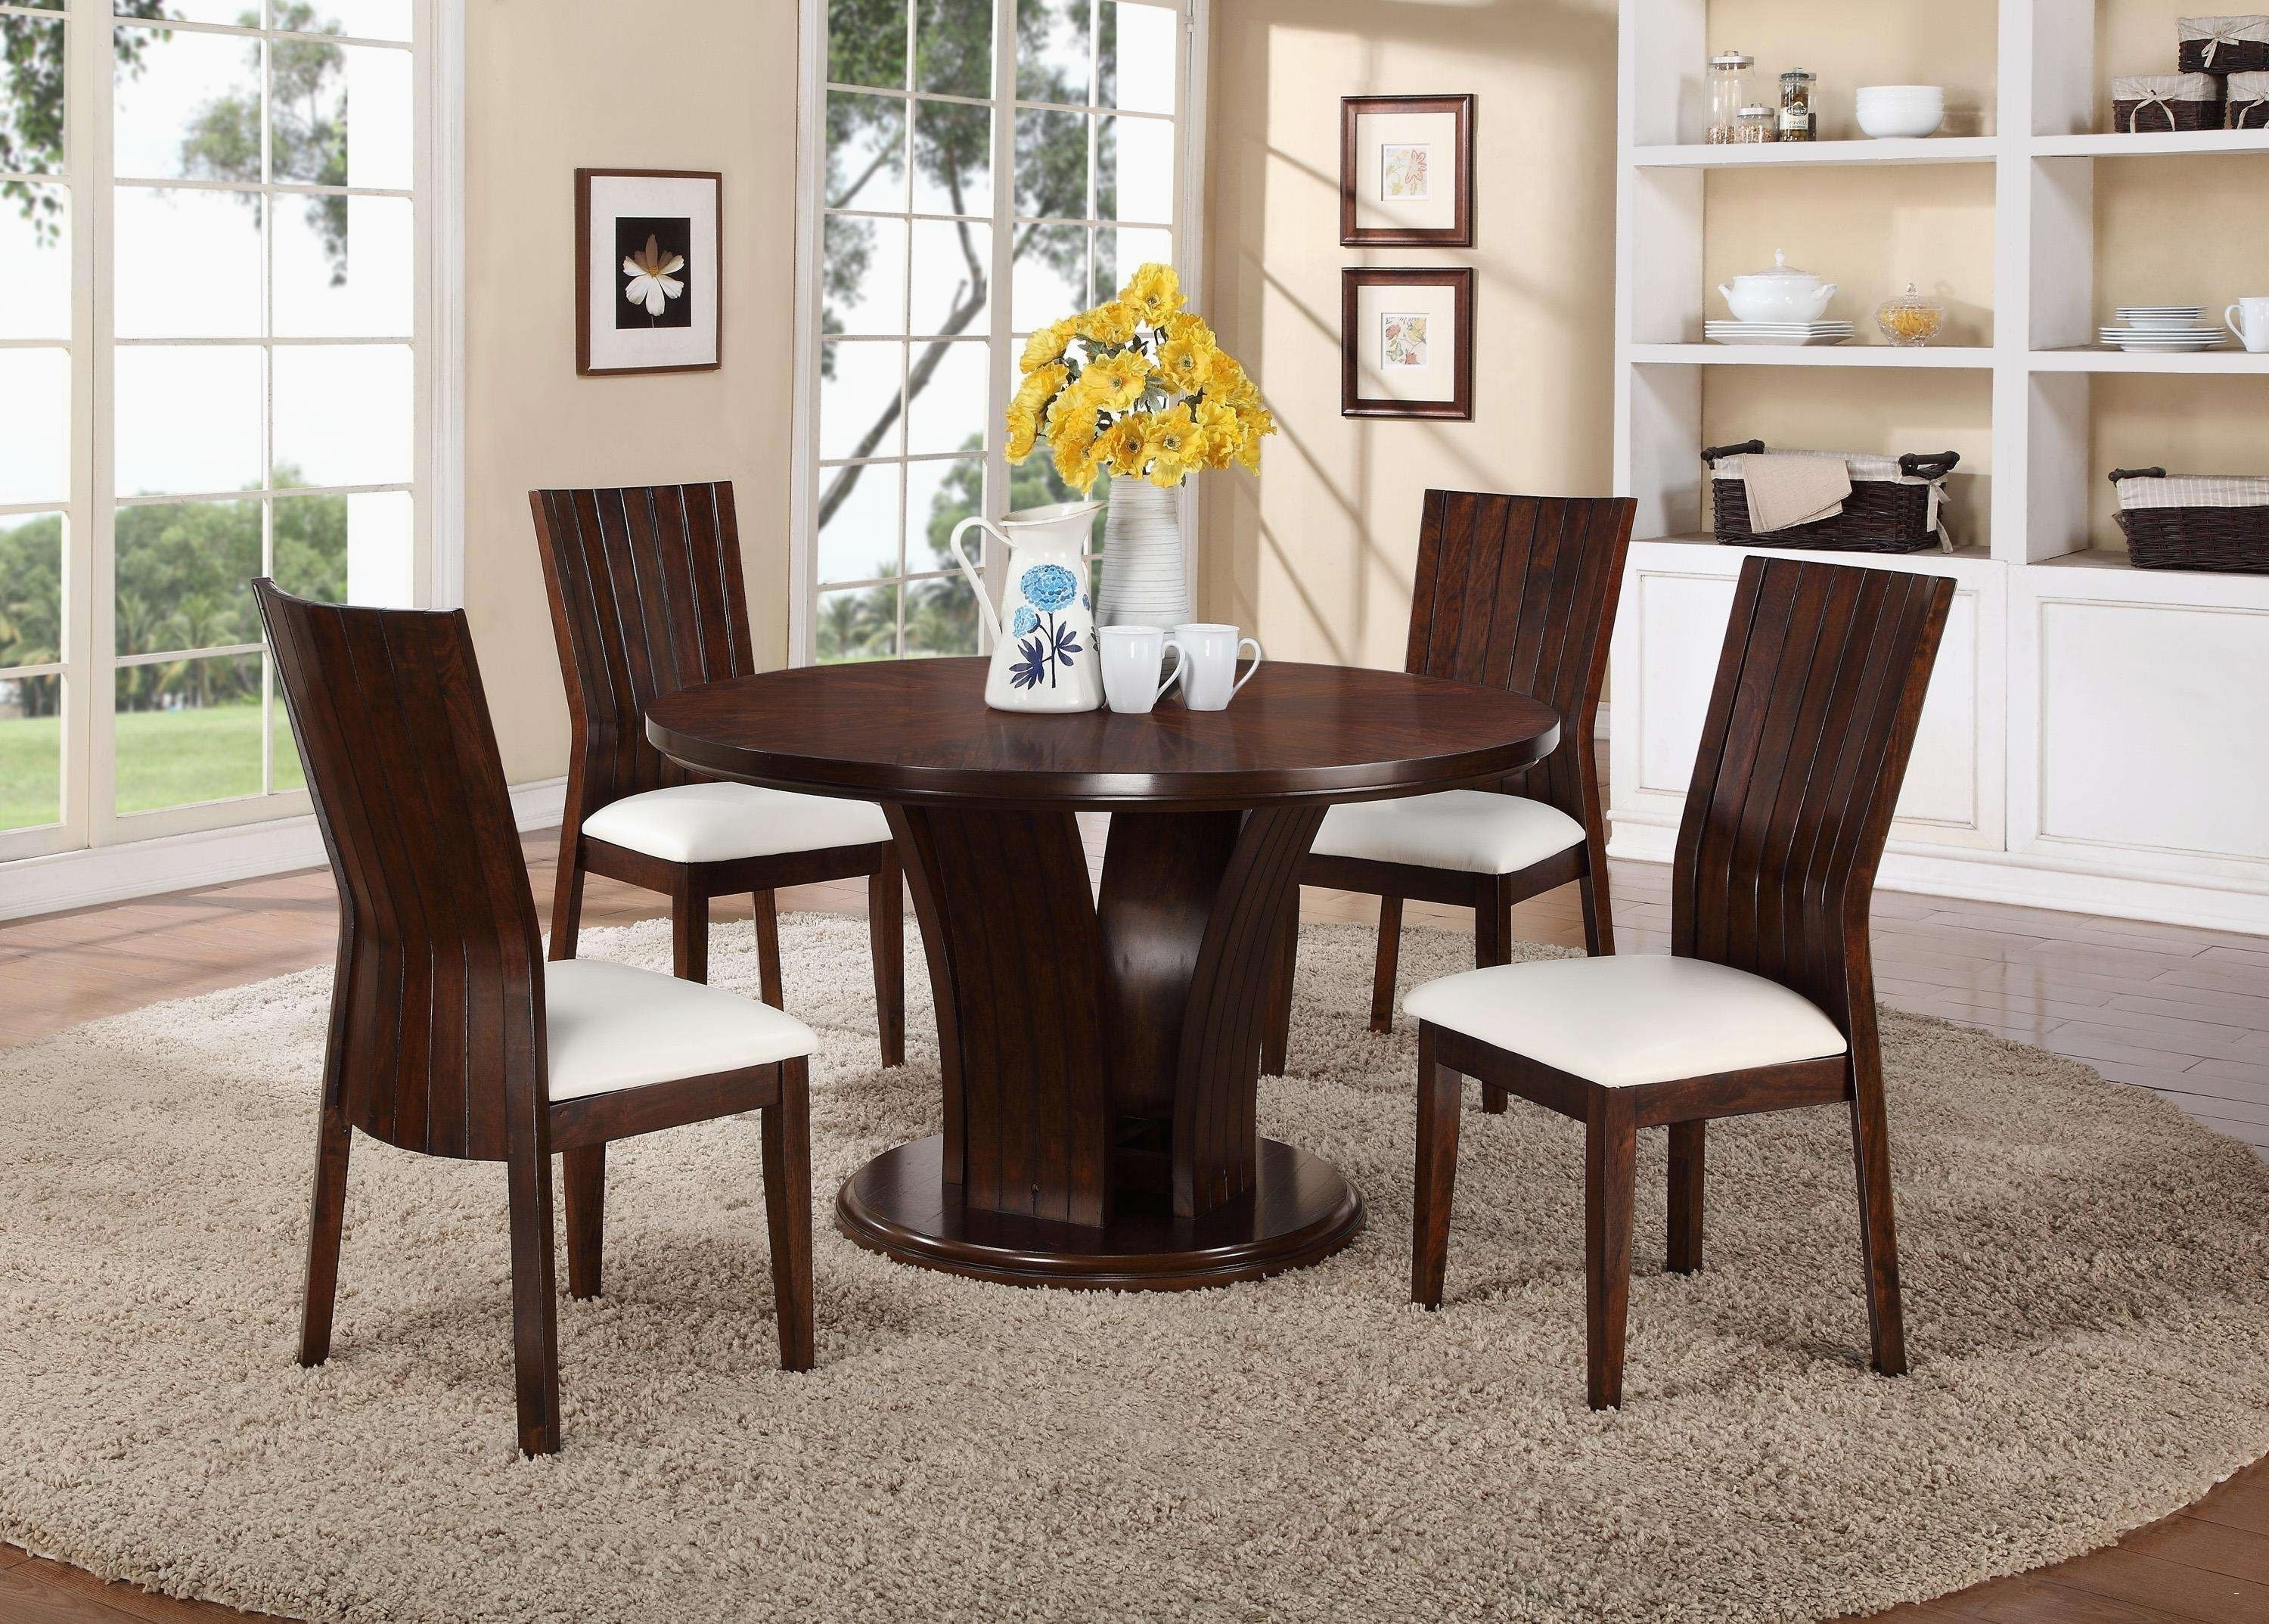 6 Seater Round Dining Tables intended for Current Round Dining Tables For 8 Inspirational 6 Seat Round Dining Table